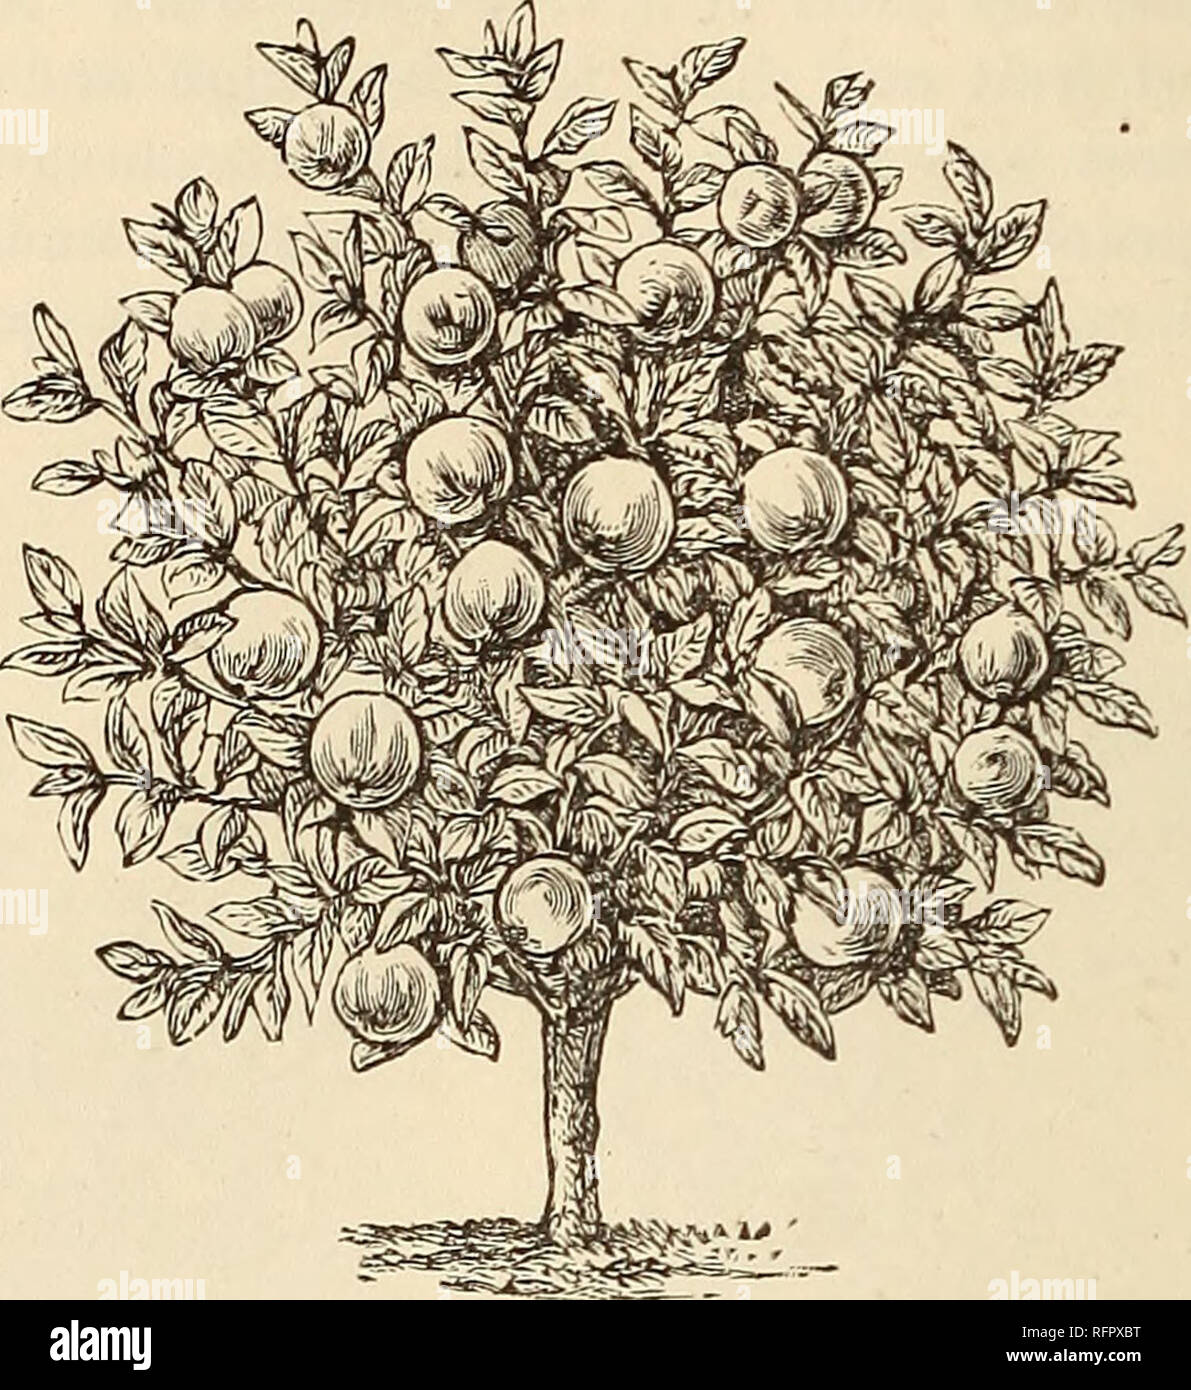 . Cassell's popular gardening. Gardening. 18 CASSELL'S POPULAR GARDENING. iato this form so naturally as the Pear, and there is one form of it, the semi-weeping conical, that very few apples are sufficiently slender, or semi-pendent, to be moulded into. Still, the Apple may readily be grown into a pyramid, albeit it has a tendency to become broad at base and upwards in proportion to its height. So much is this the case, that most pyramidal Apples are really of a sort of hybrid form between a bush and a cone. Nor are these at all objectionable, as they suit the idiosyncrasy of Apple habit, and  - Stock Image